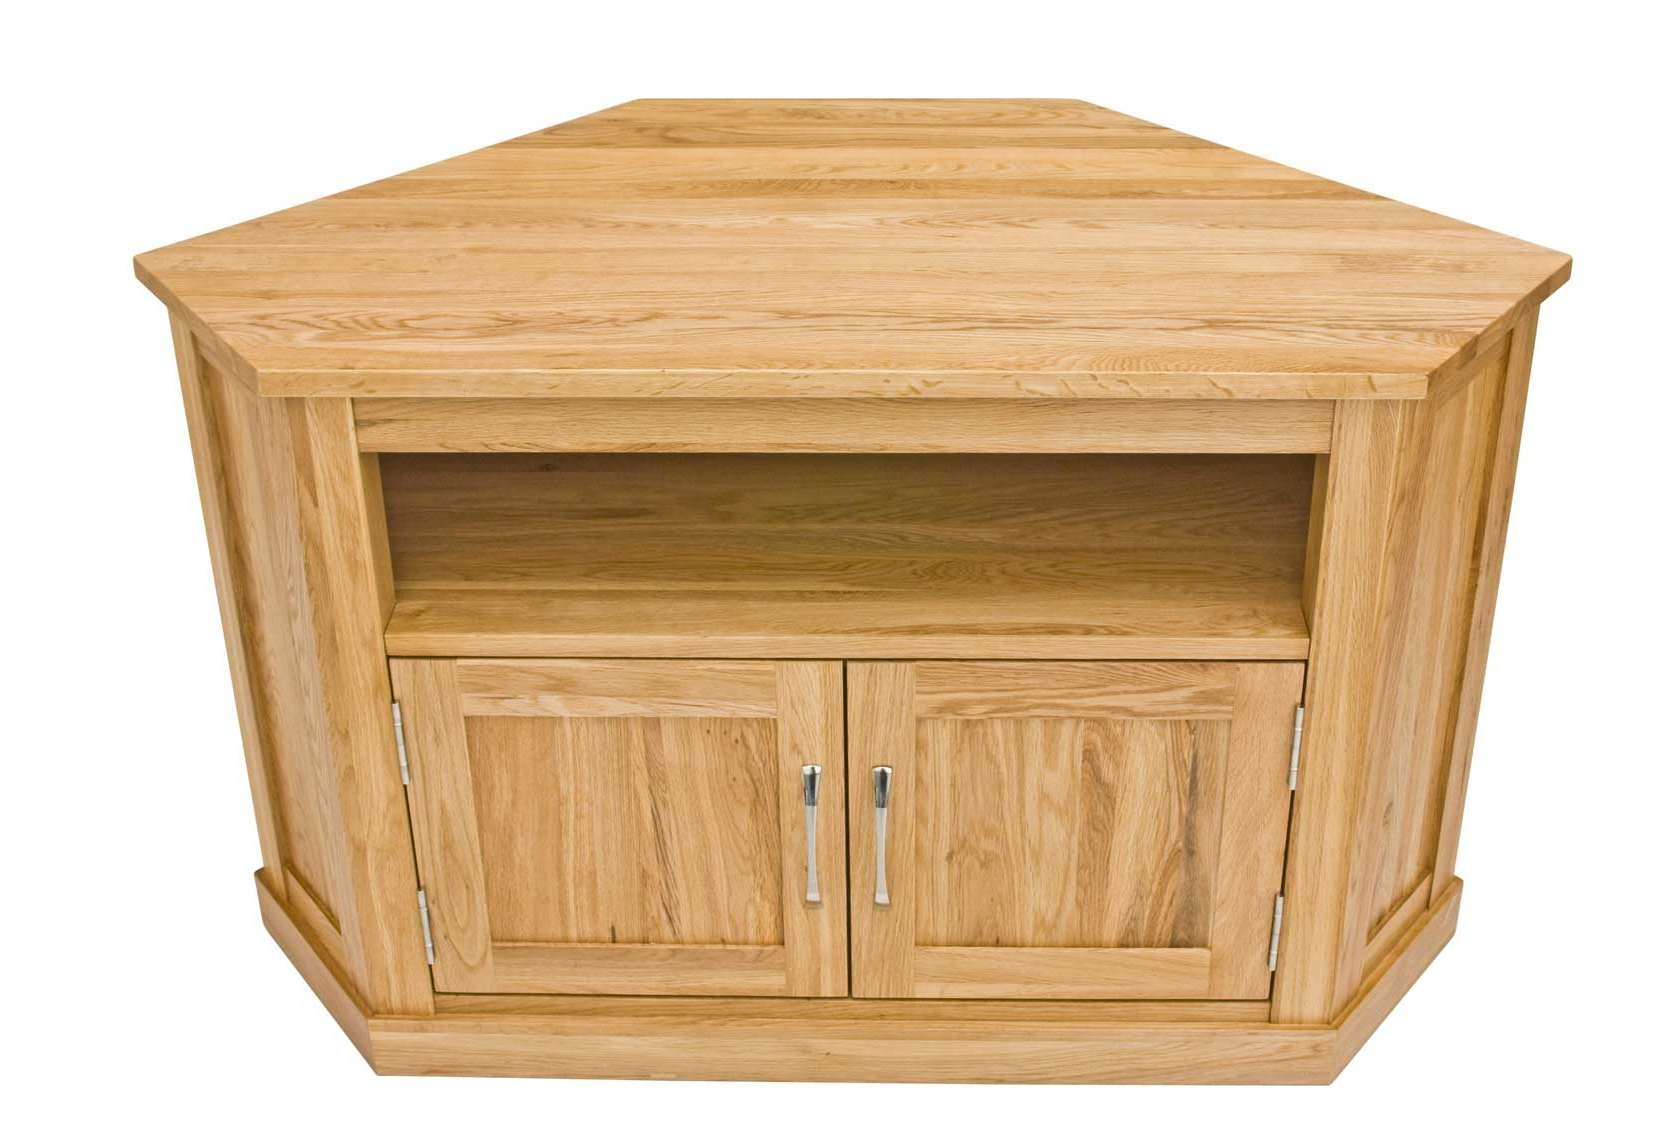 Classic Oak Corner Television Cabinet | Hampshire Furniture Pertaining To Wooden Tv Stands Corner Units (View 4 of 15)